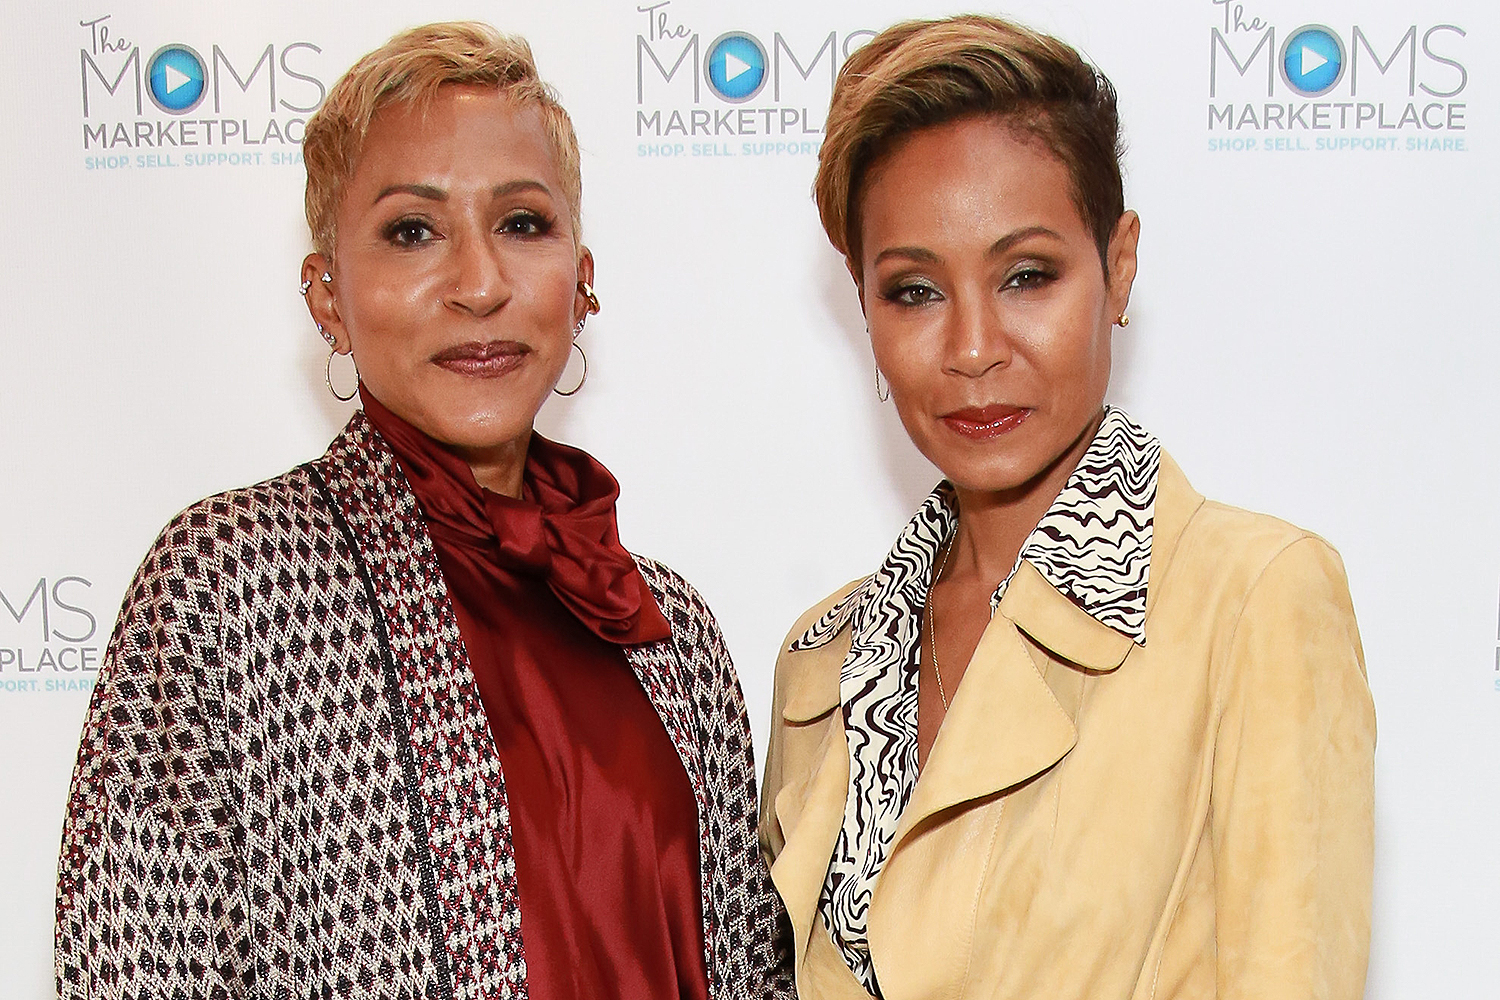 Adrienne Banfield-Jones and Jada Pinkett Smith